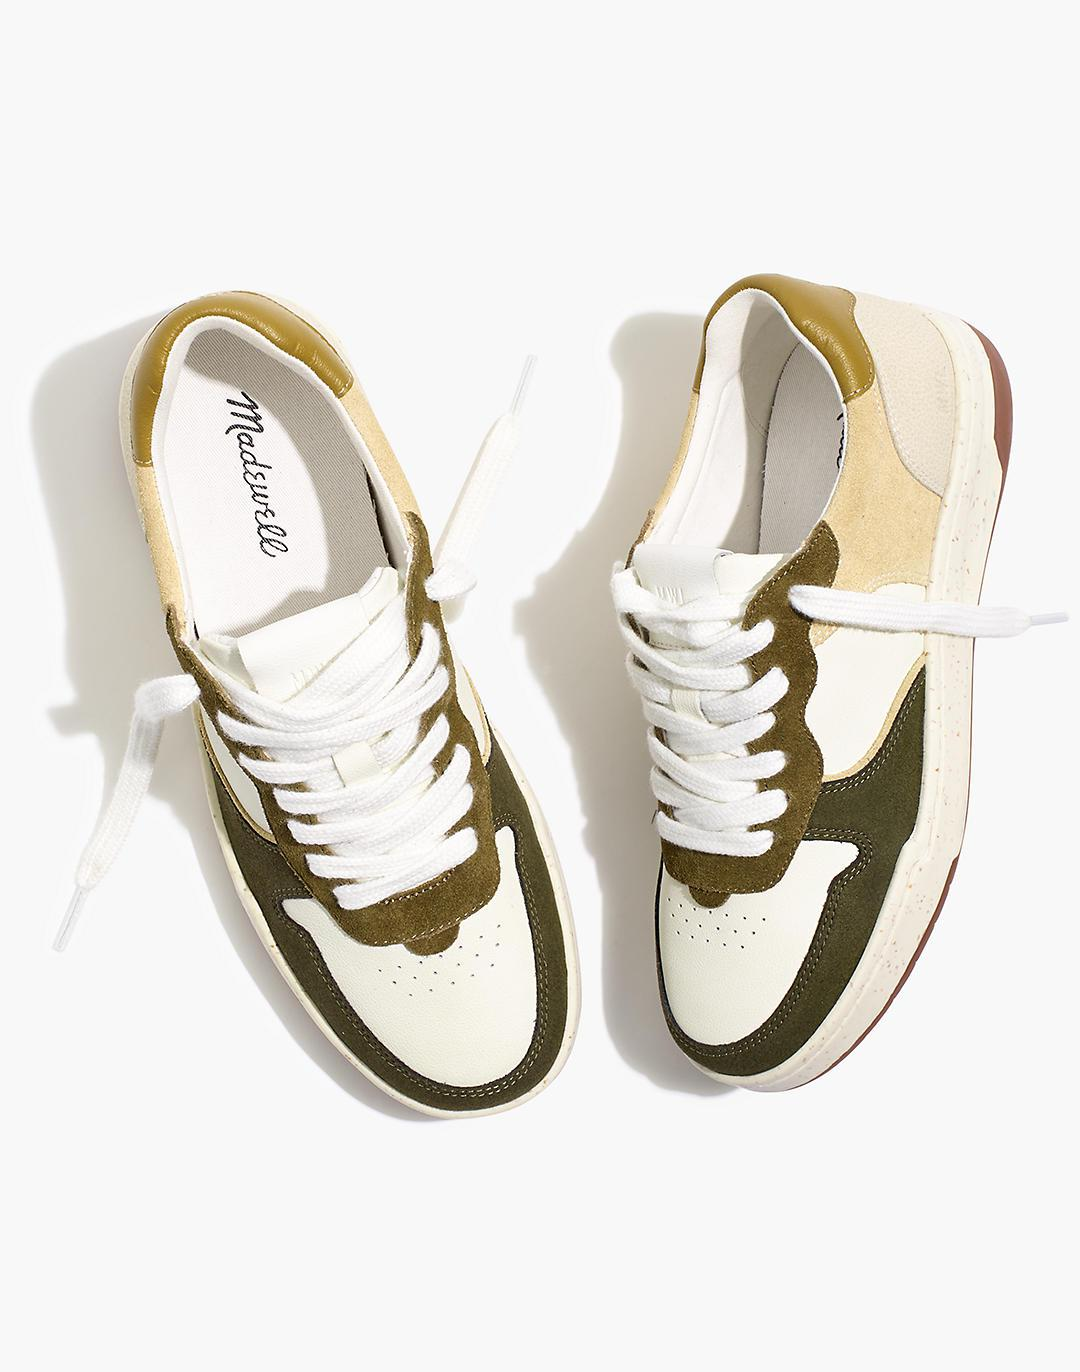 Court Sneakers in Colorblock Leather and Suede